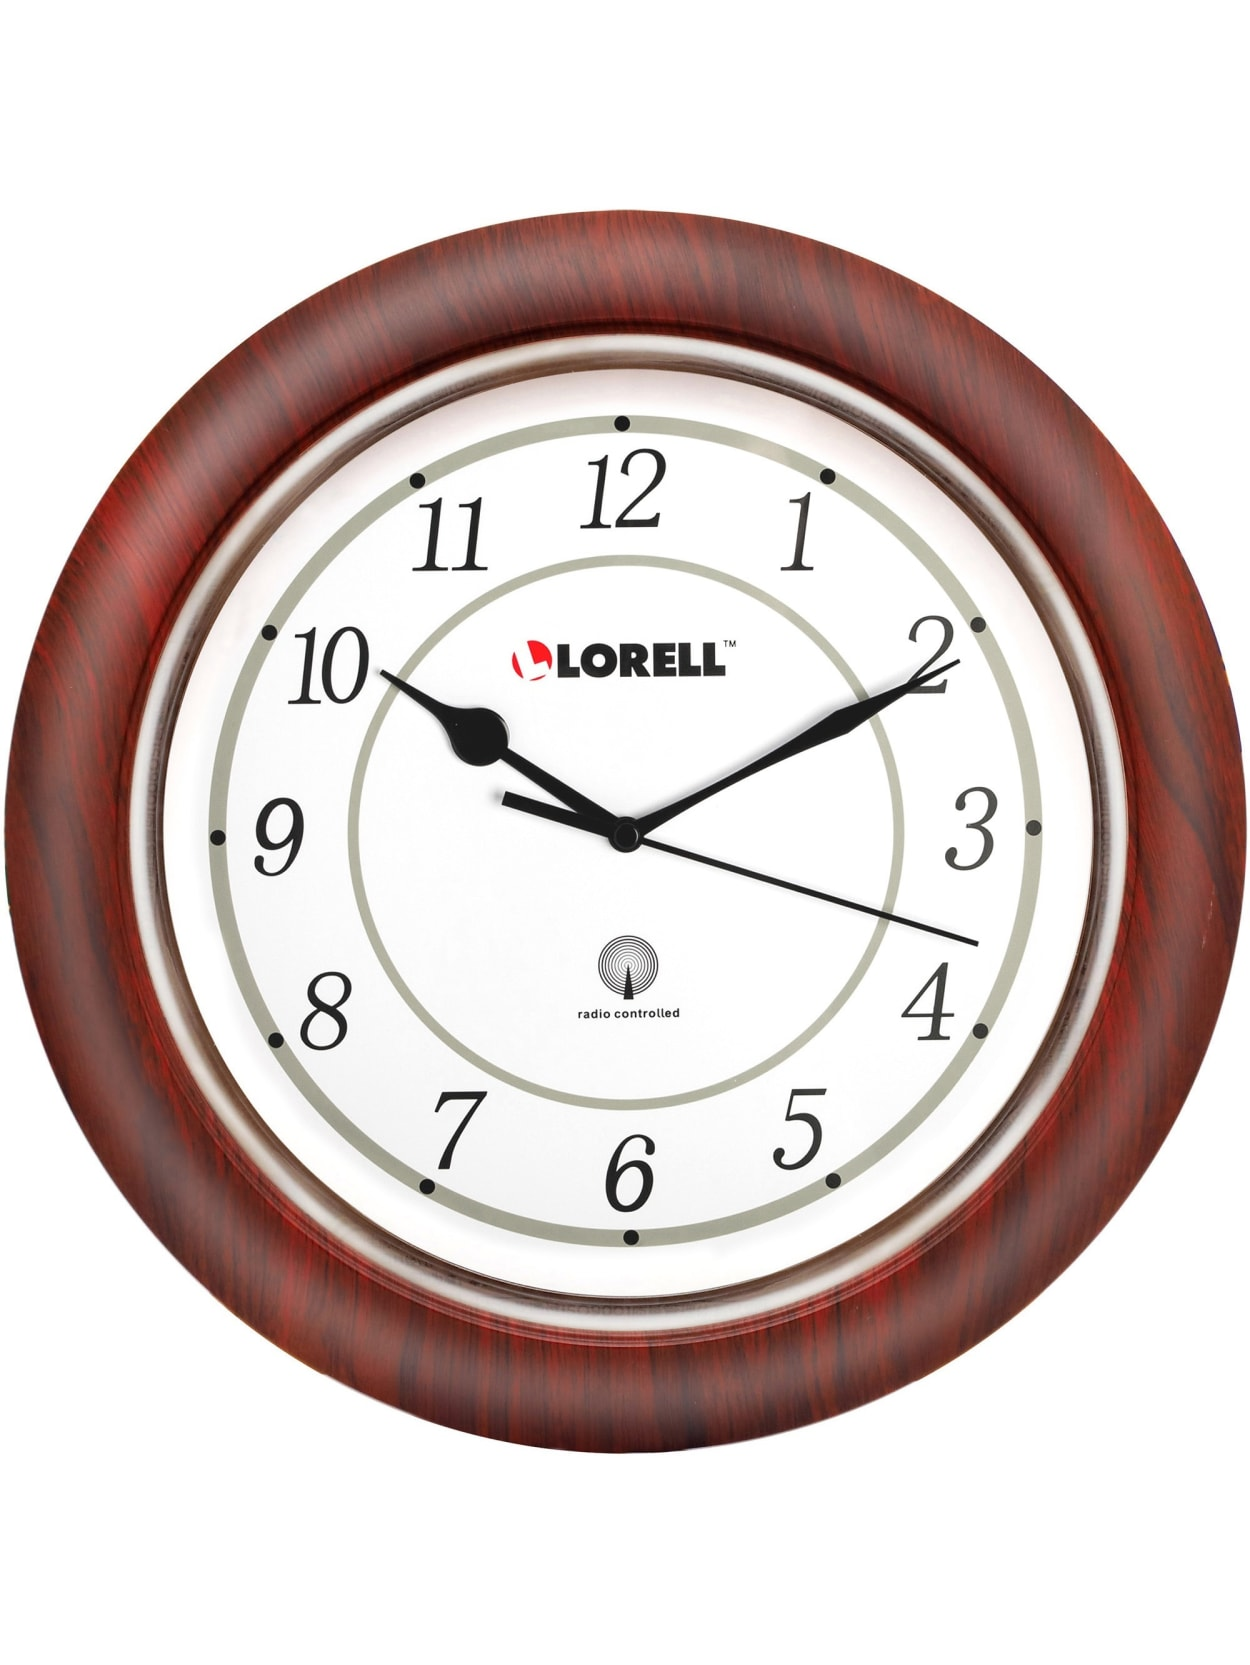 Lorell 13 14 Round Atomic Wood Wall Clock Mahogany Office Depot